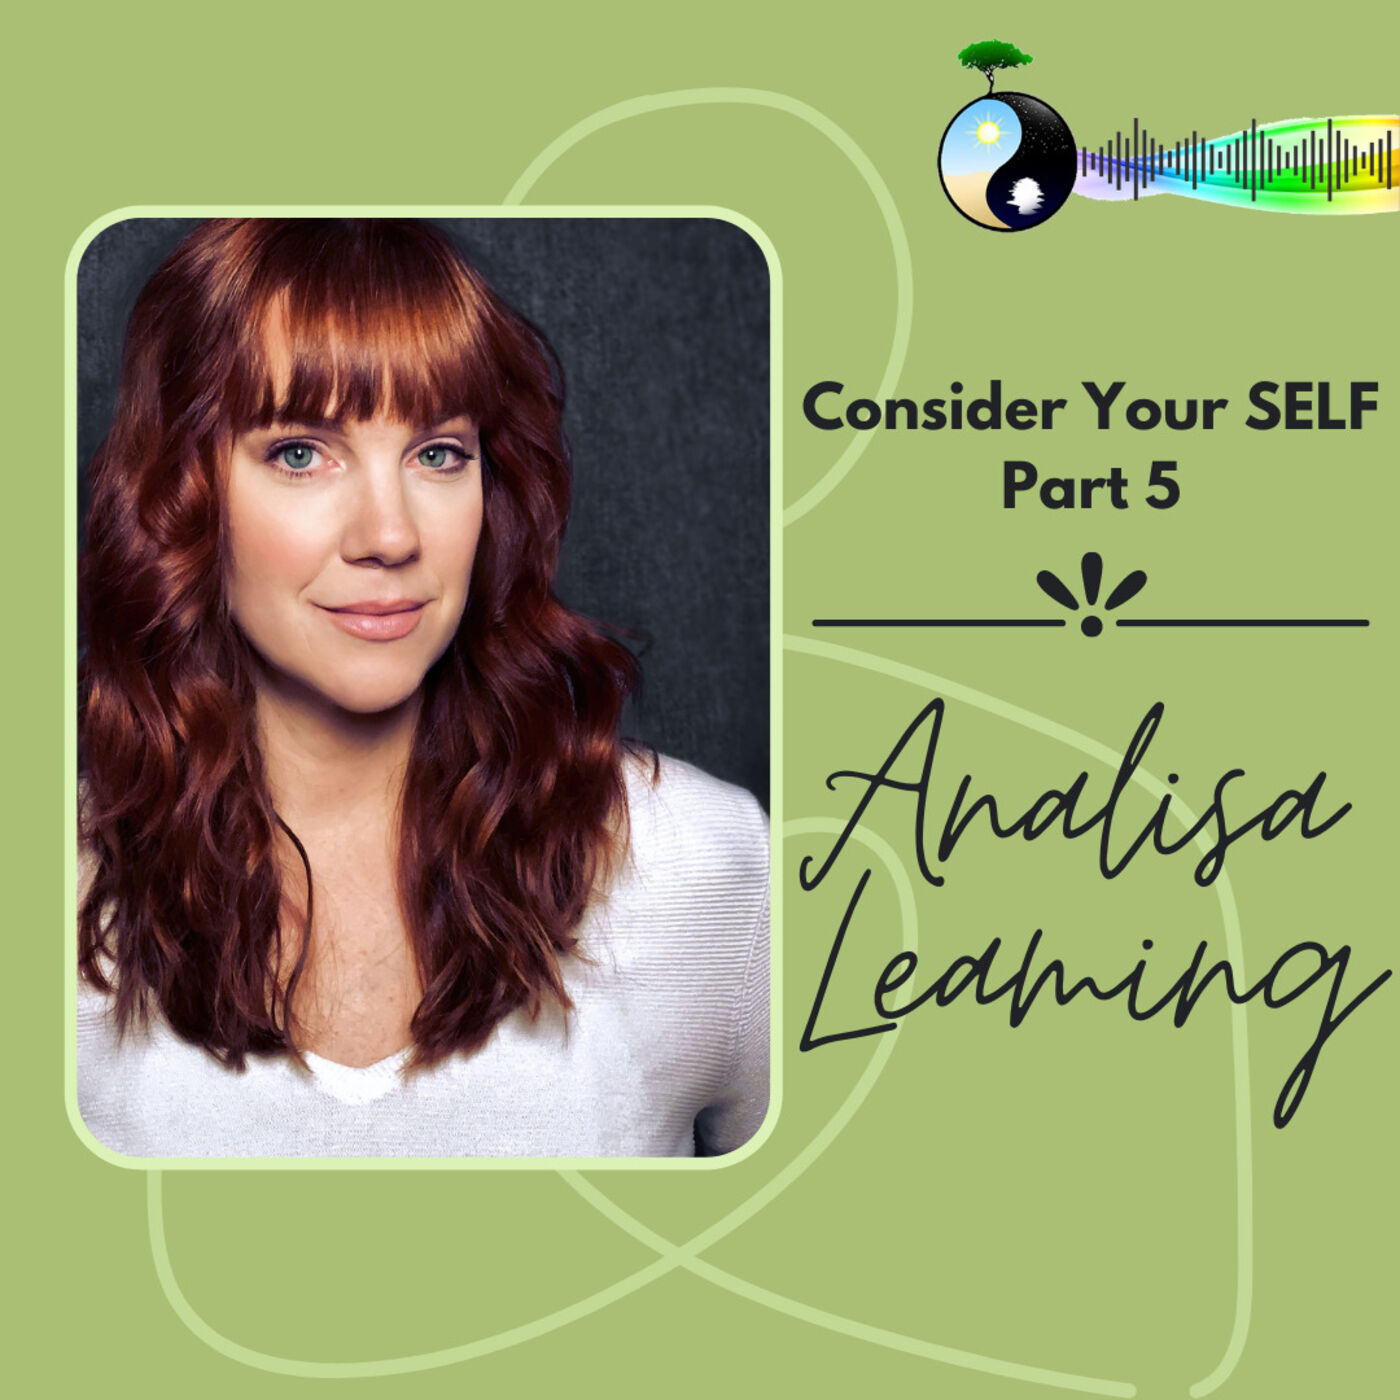 Consider Your SELF with Broadway's Analisa Leaming